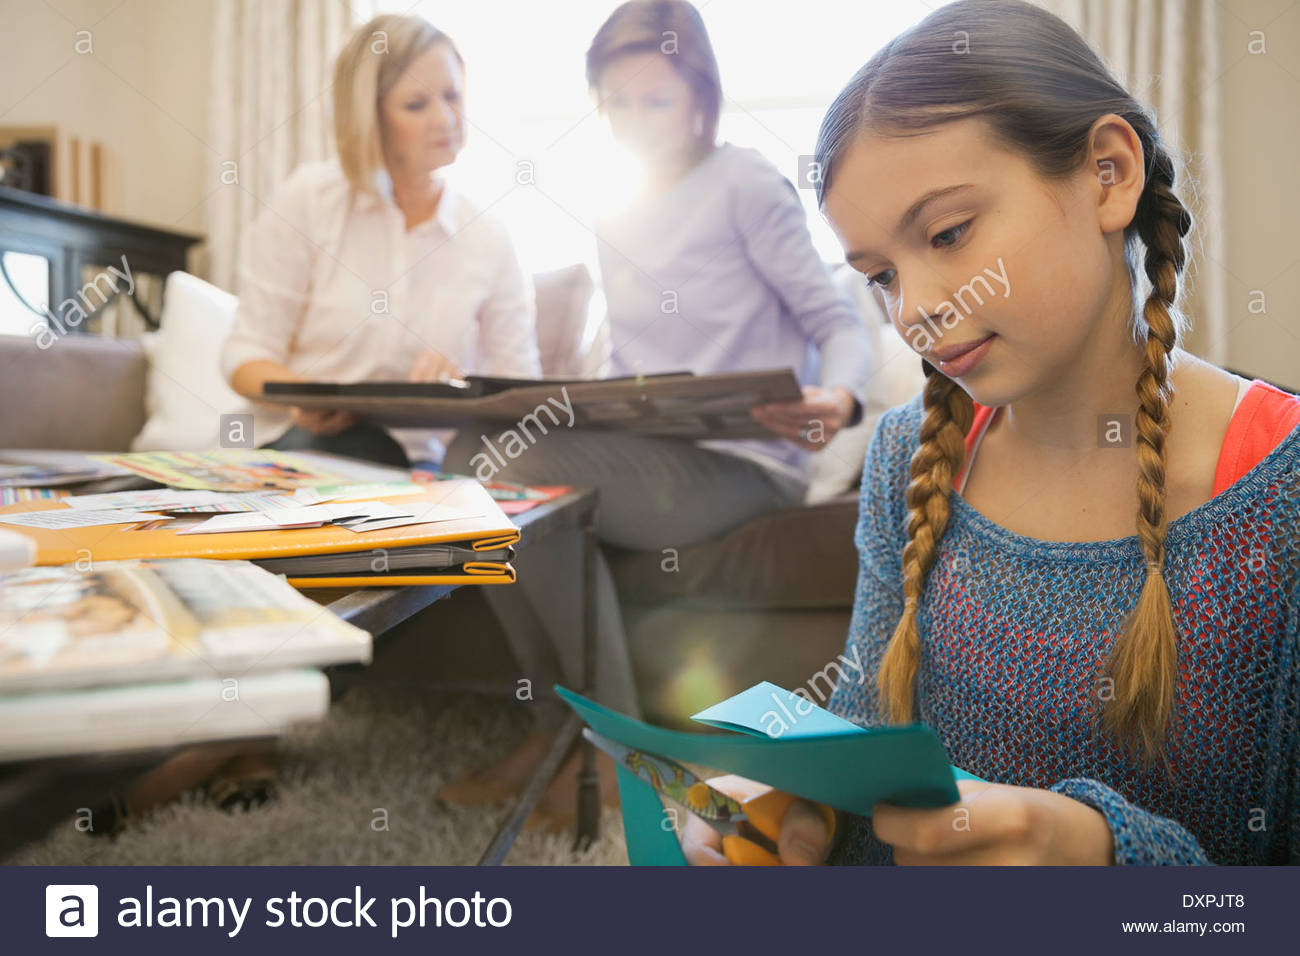 Girl scrapbooking at home - Stock Image